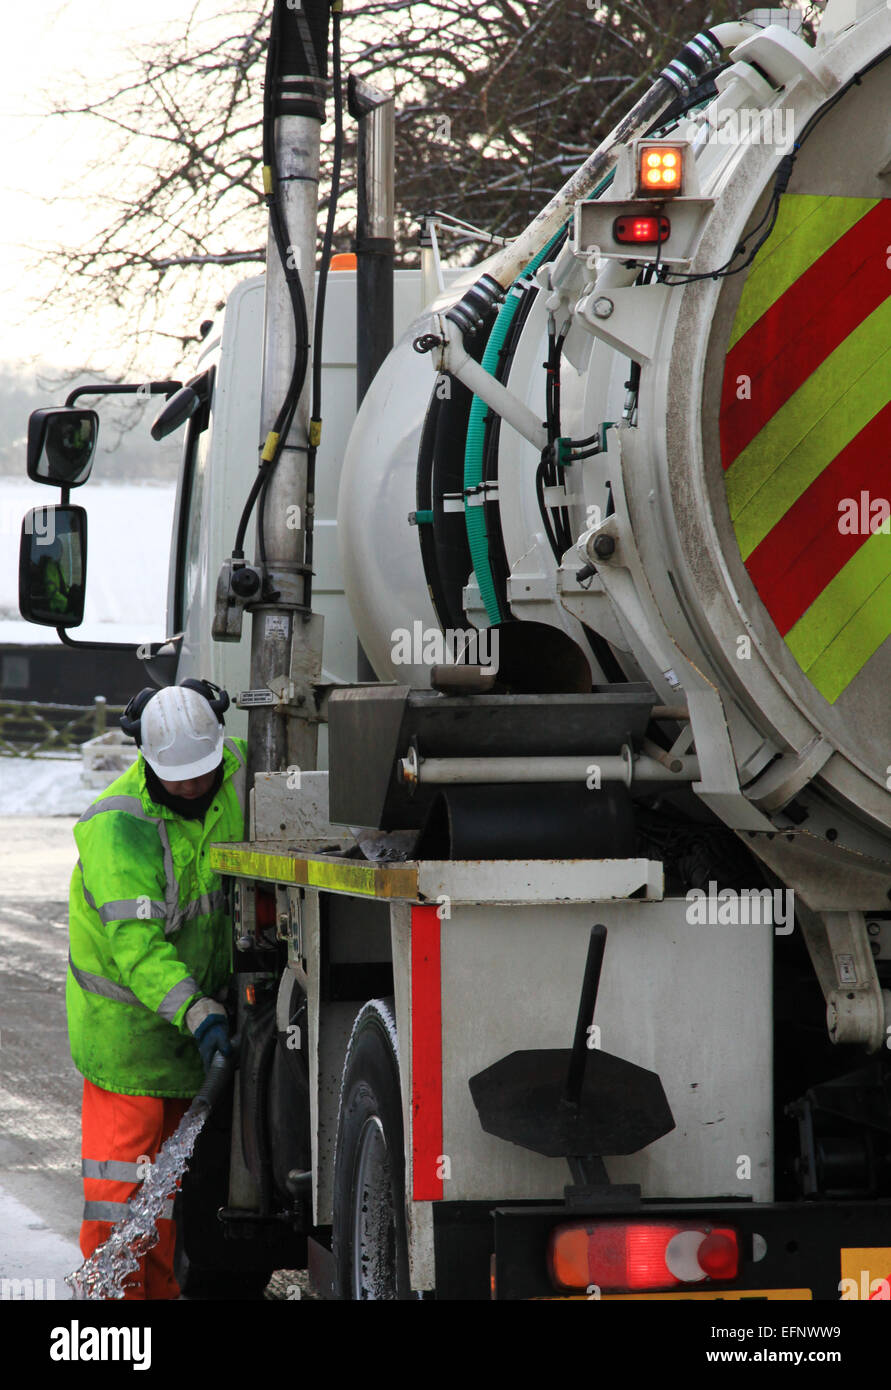 Surface water is normally drained off roads by gullies and grips. Gully tanker at work 2 operatives men at work. - Stock Image